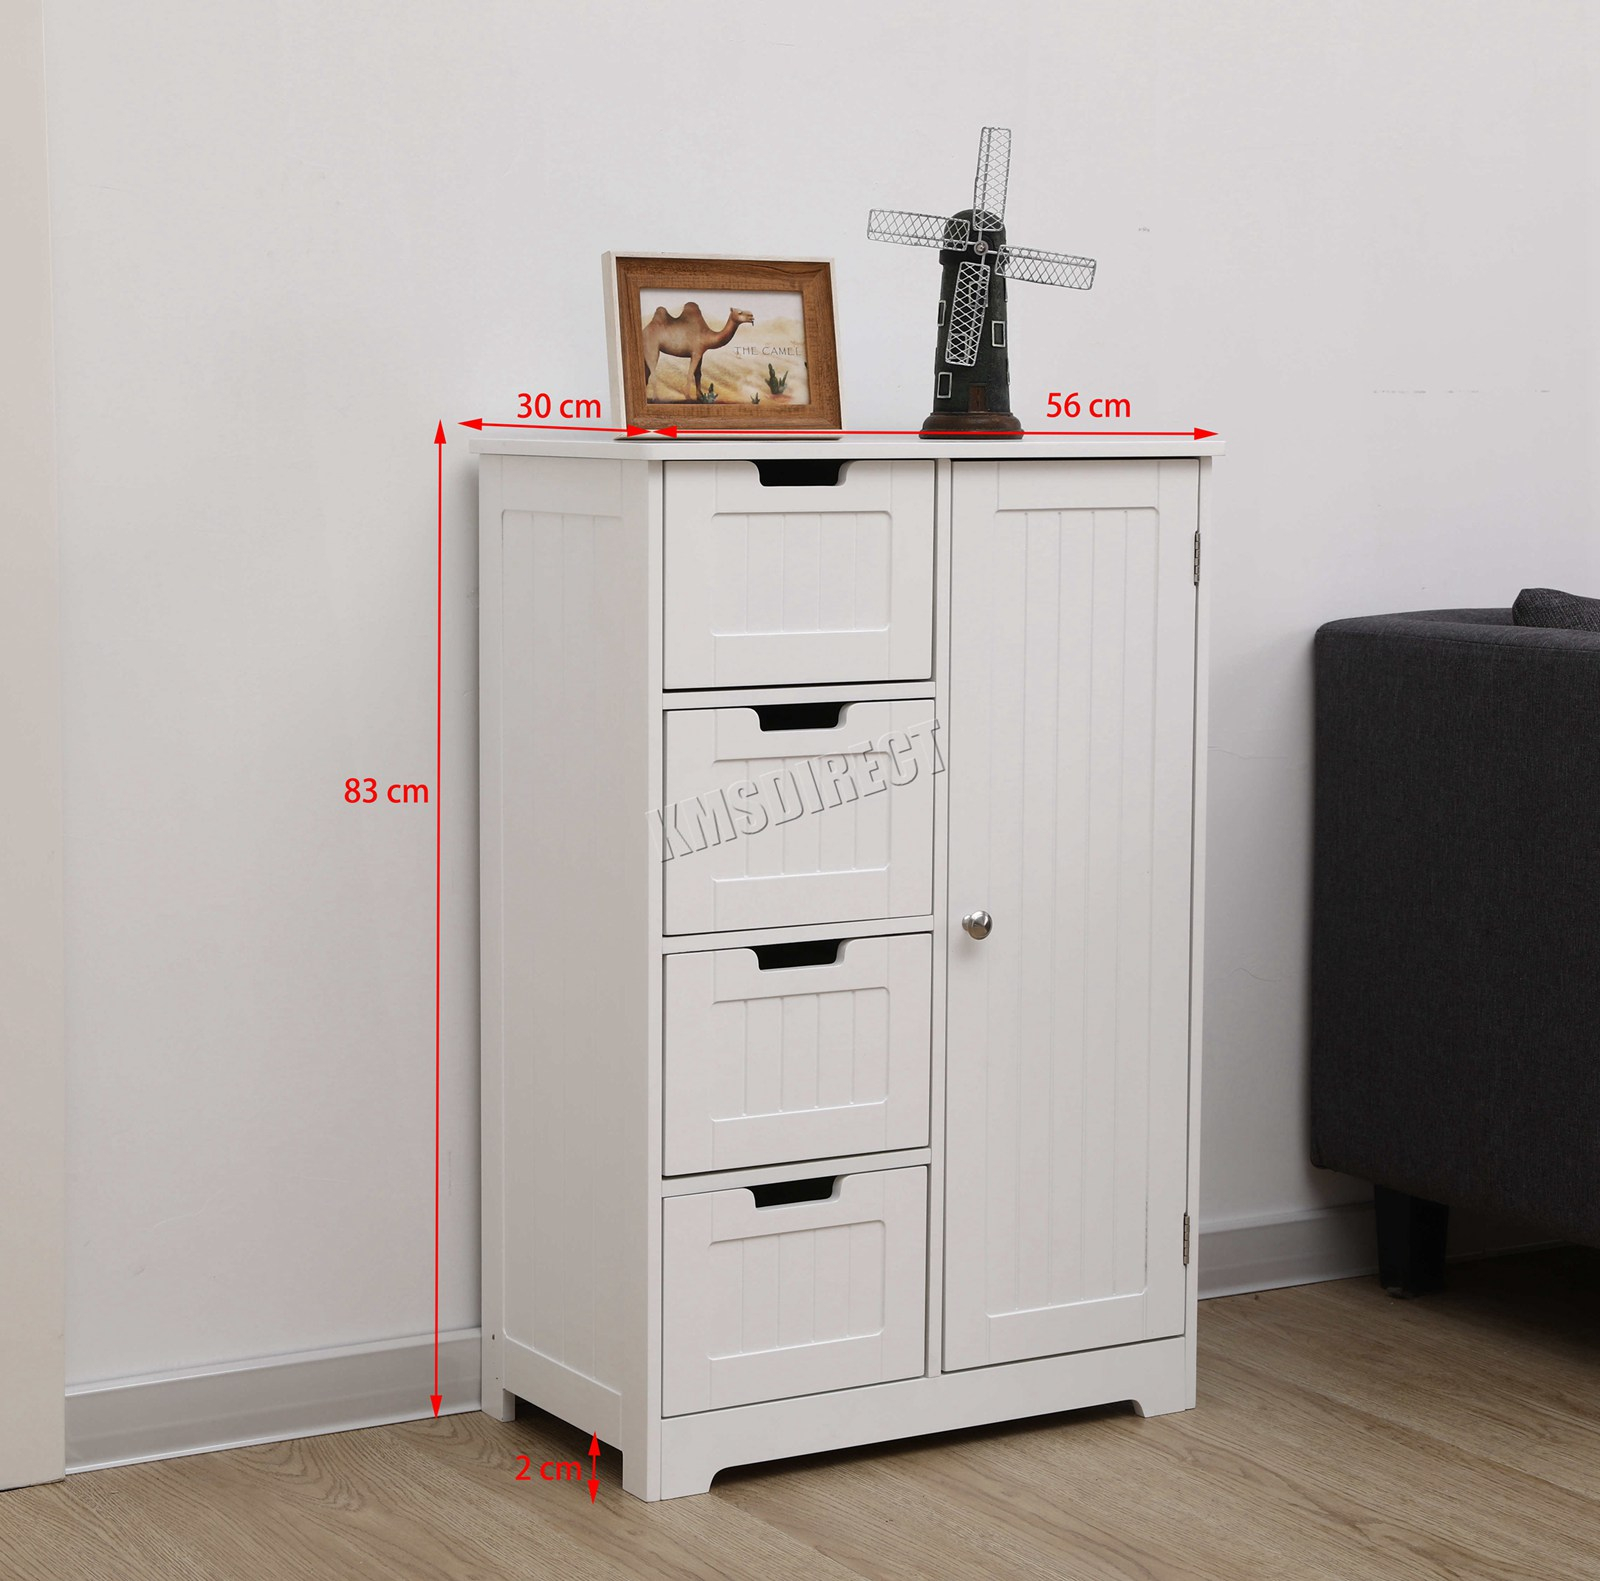 Details About Westwood Bathroom Storage Cabinet Wooden 4 Drawer Cupboard Free Standing Unit with regard to size 1600 X 1581